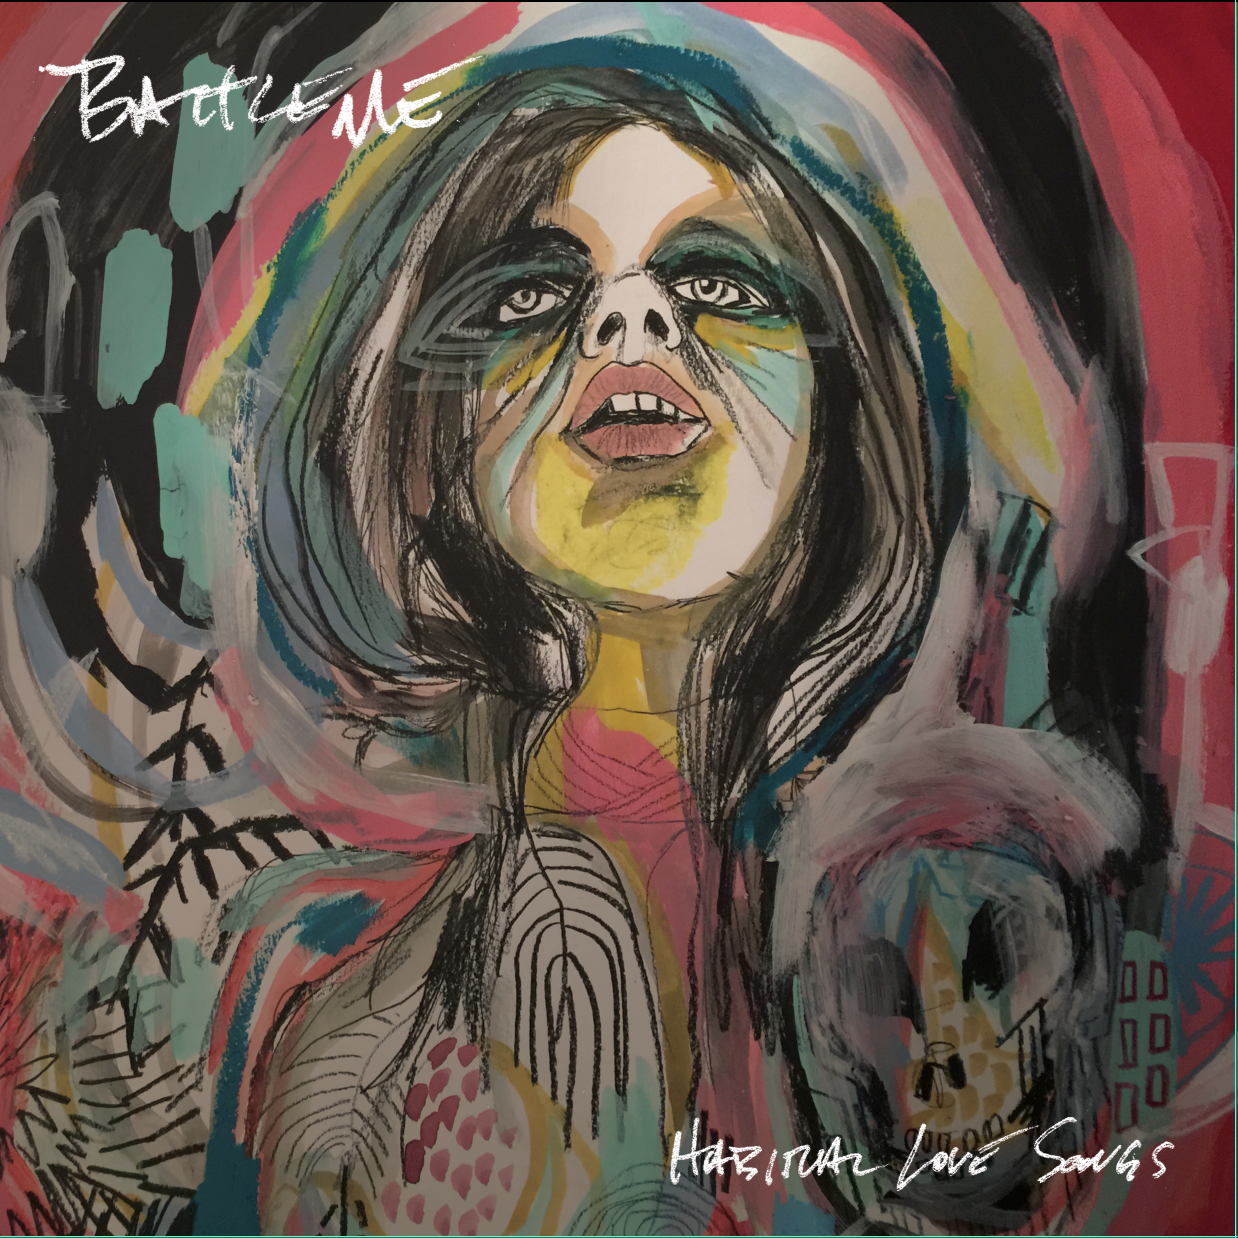 Battleme - Habitual Love Songs